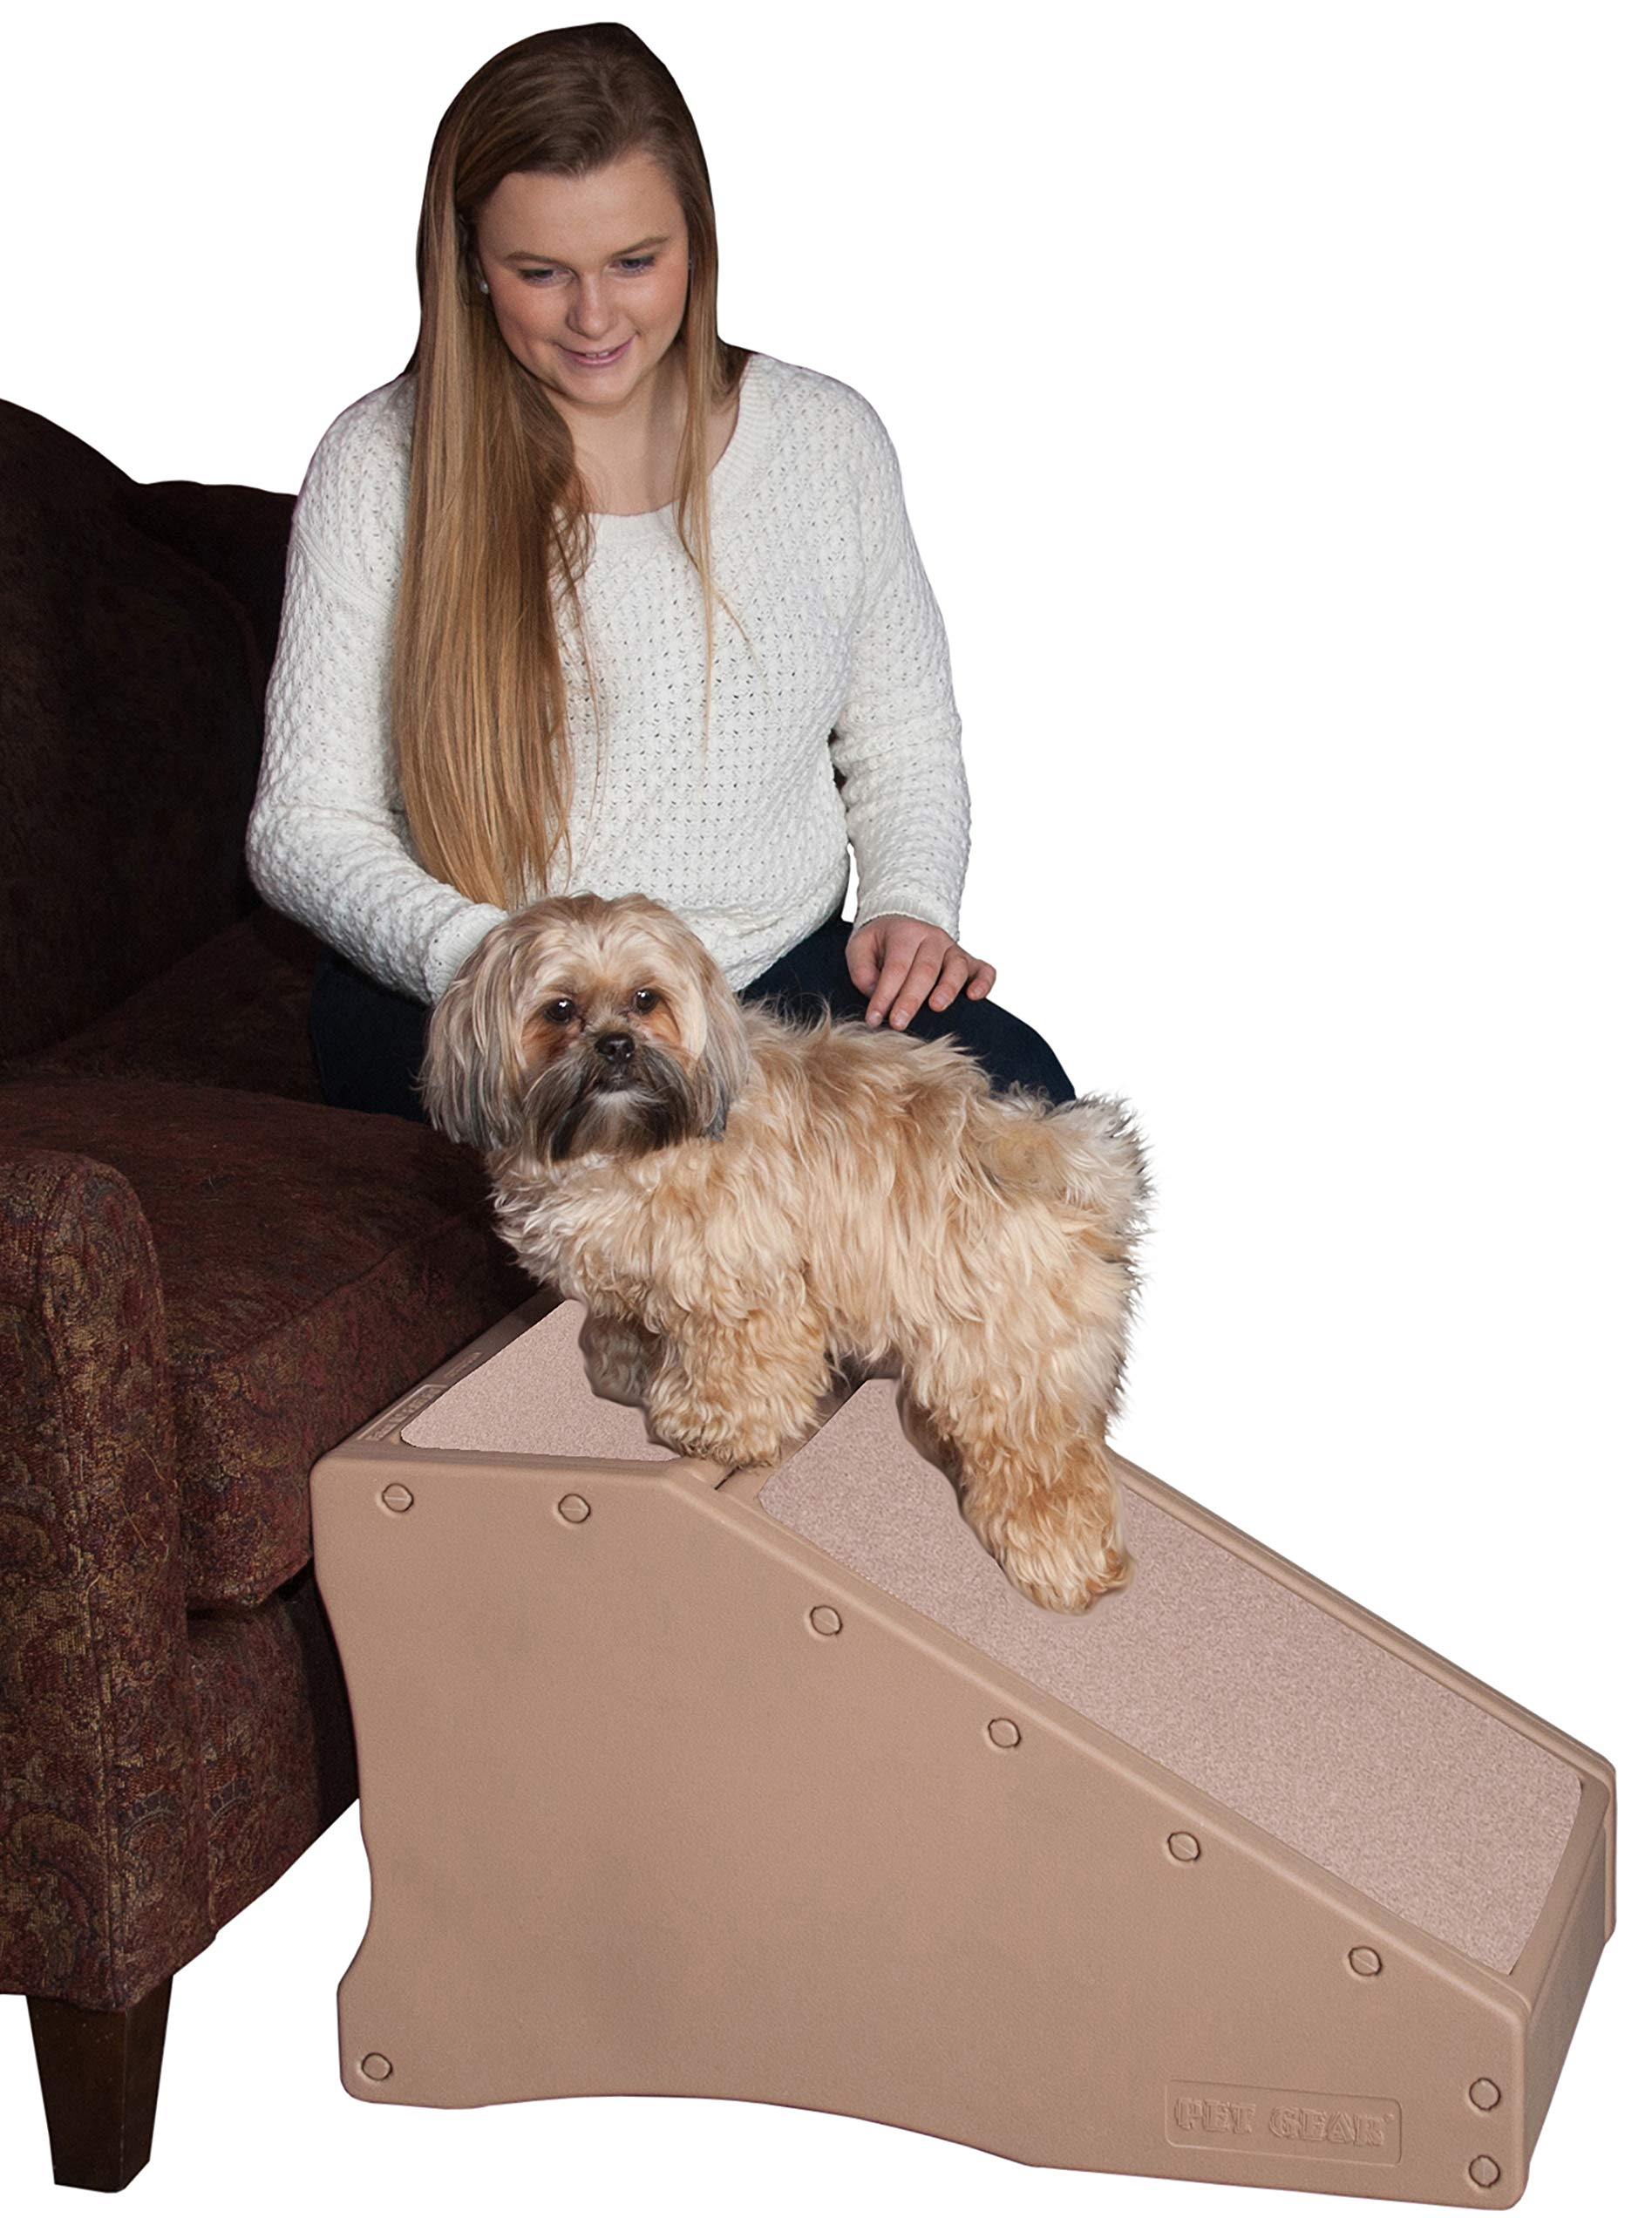 Pet Gear Stramp Stair and Ramp Combination, Dog/Cat Easy Step, Lightweight/Portable, Sturdy by Pet Gear